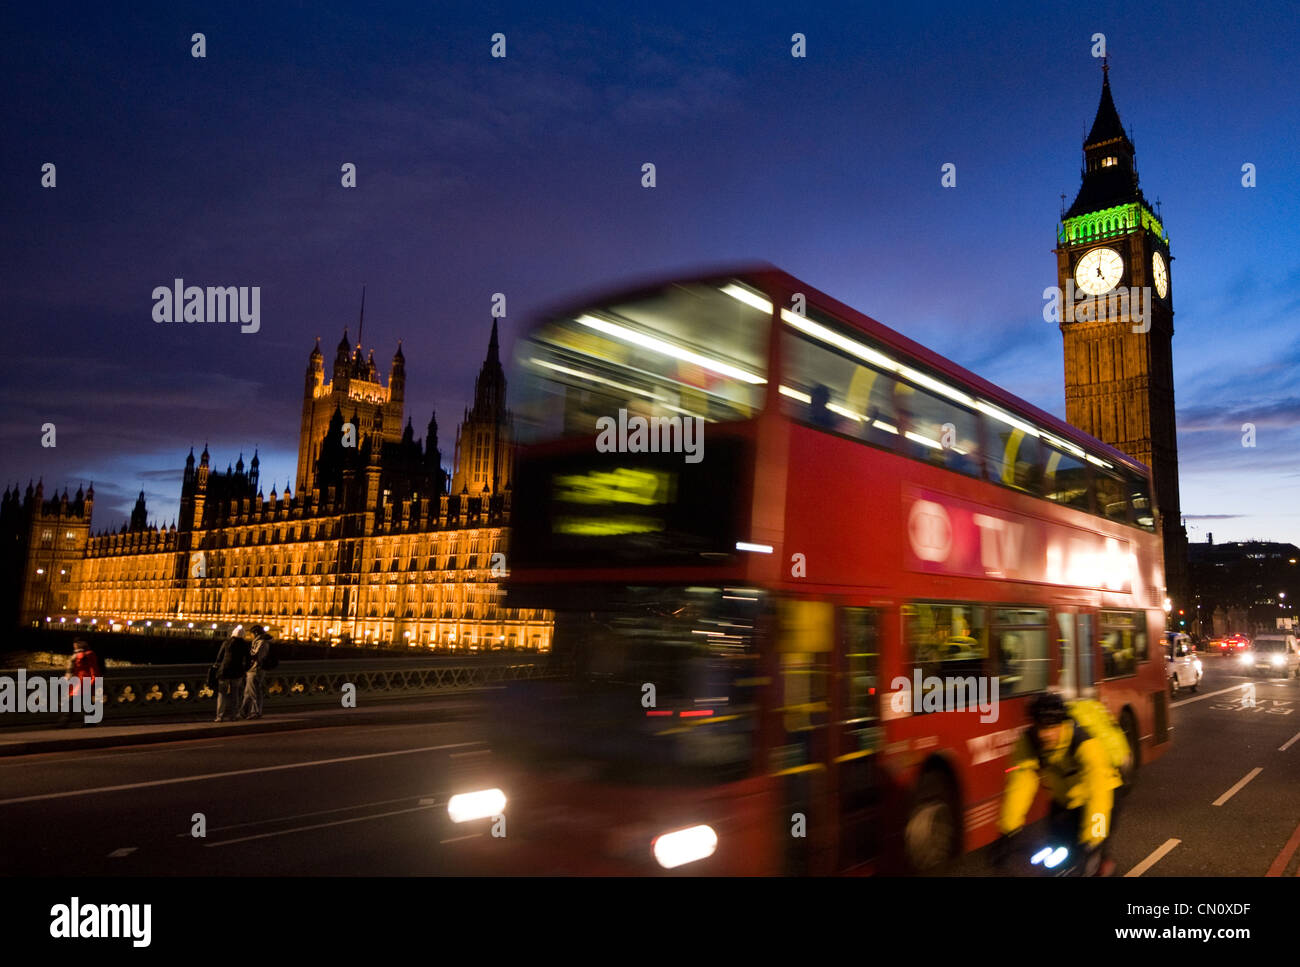 Double Decker bus and cyclist zoom past the Palace of Westminster (Big Ben) in London, England, on Nov. 4, 2009. - Stock Image